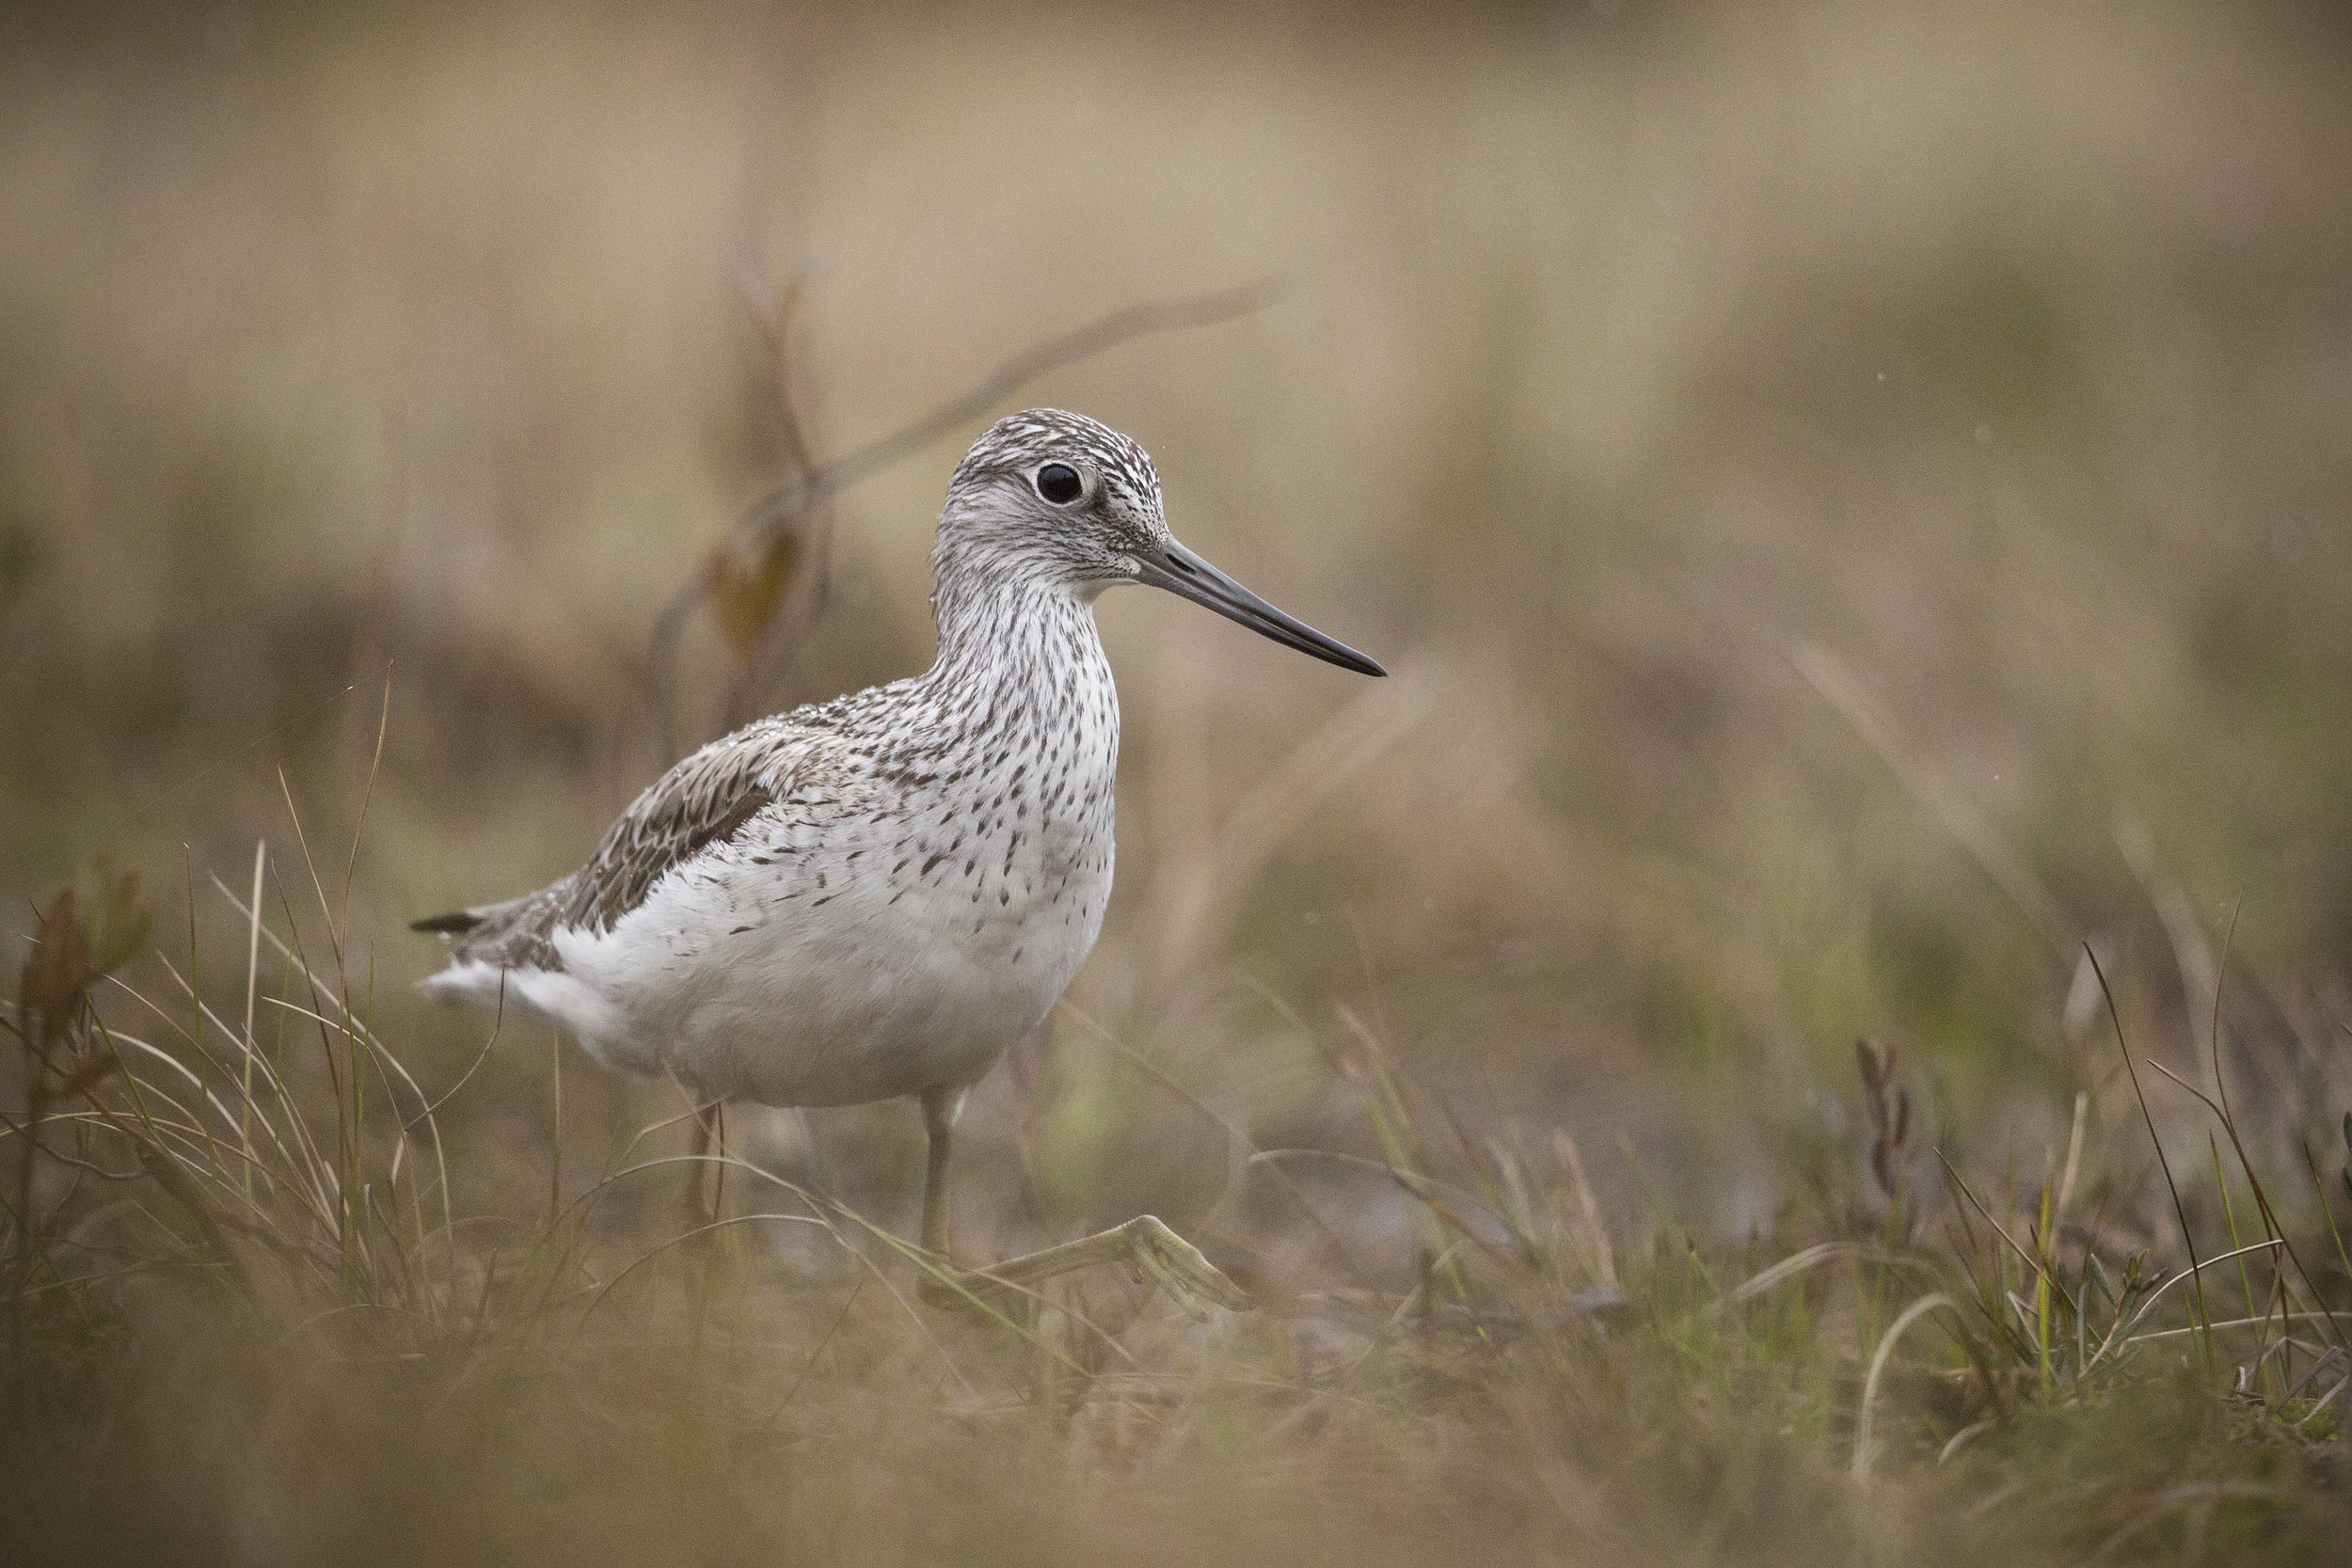 A showy Greenshank feeds busily, only a few feet infront of our hide.